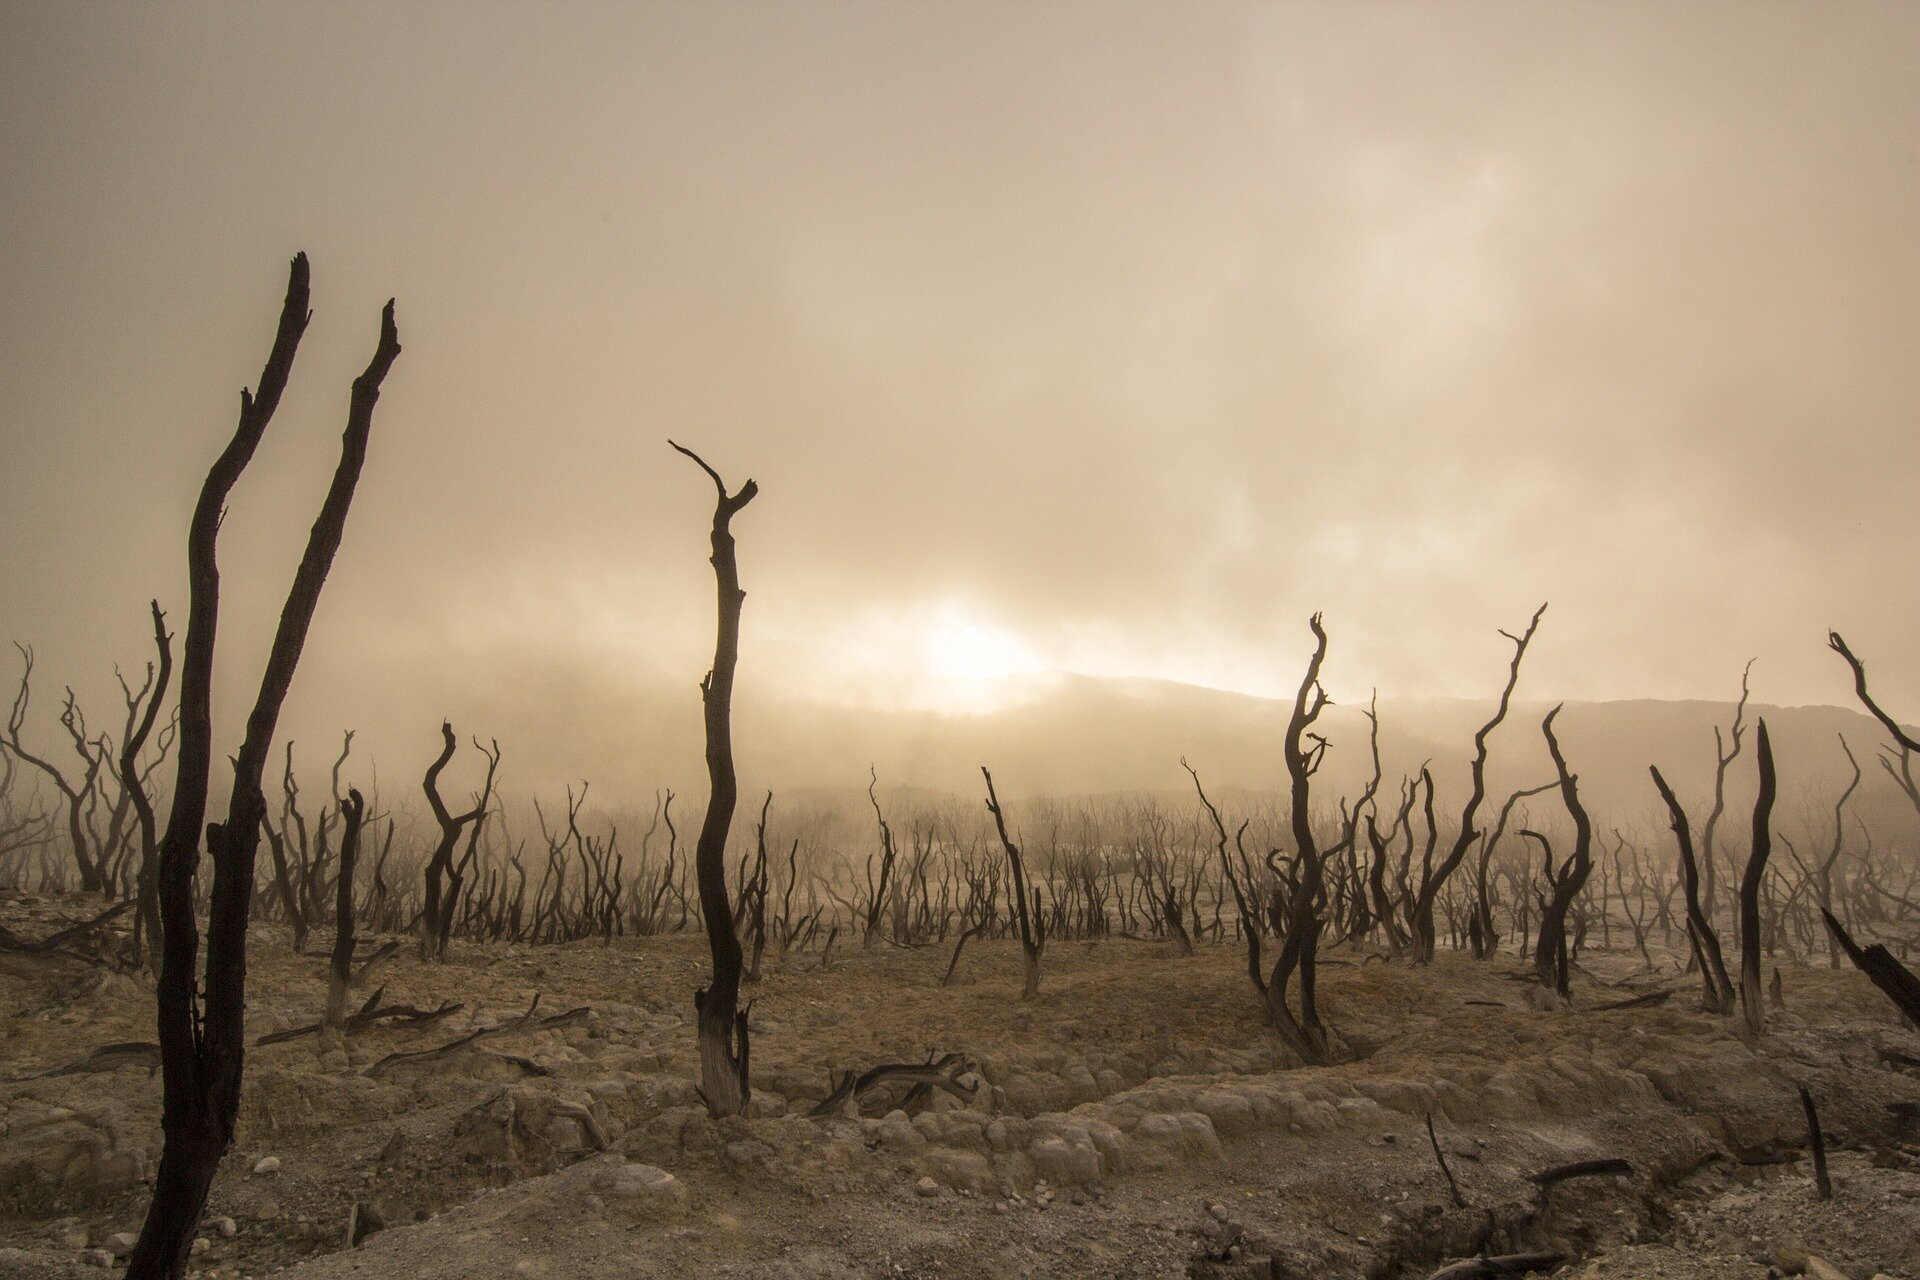 Understanding past climate change 'tipping points' can help us prepare for the future